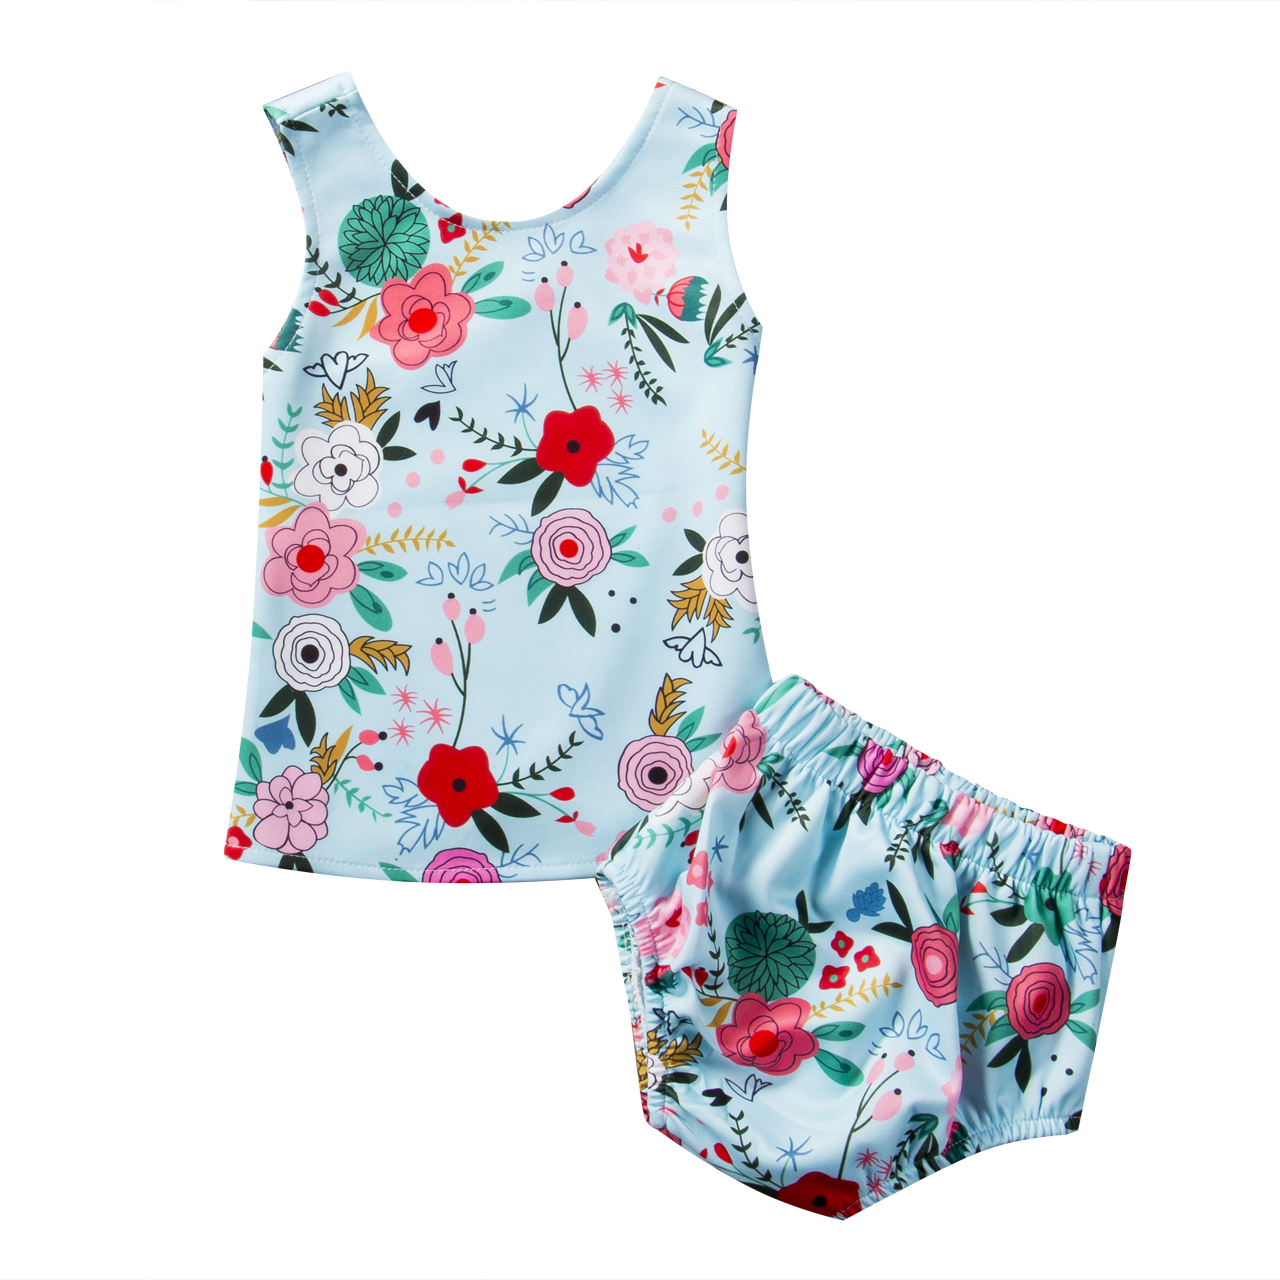 2Pcs Sets Newborn Toddler Baby Girl Clothes Floral Vest T-shirts+Short Pants Bottoms Kids Girls Fashion Summer Cotton Outfits